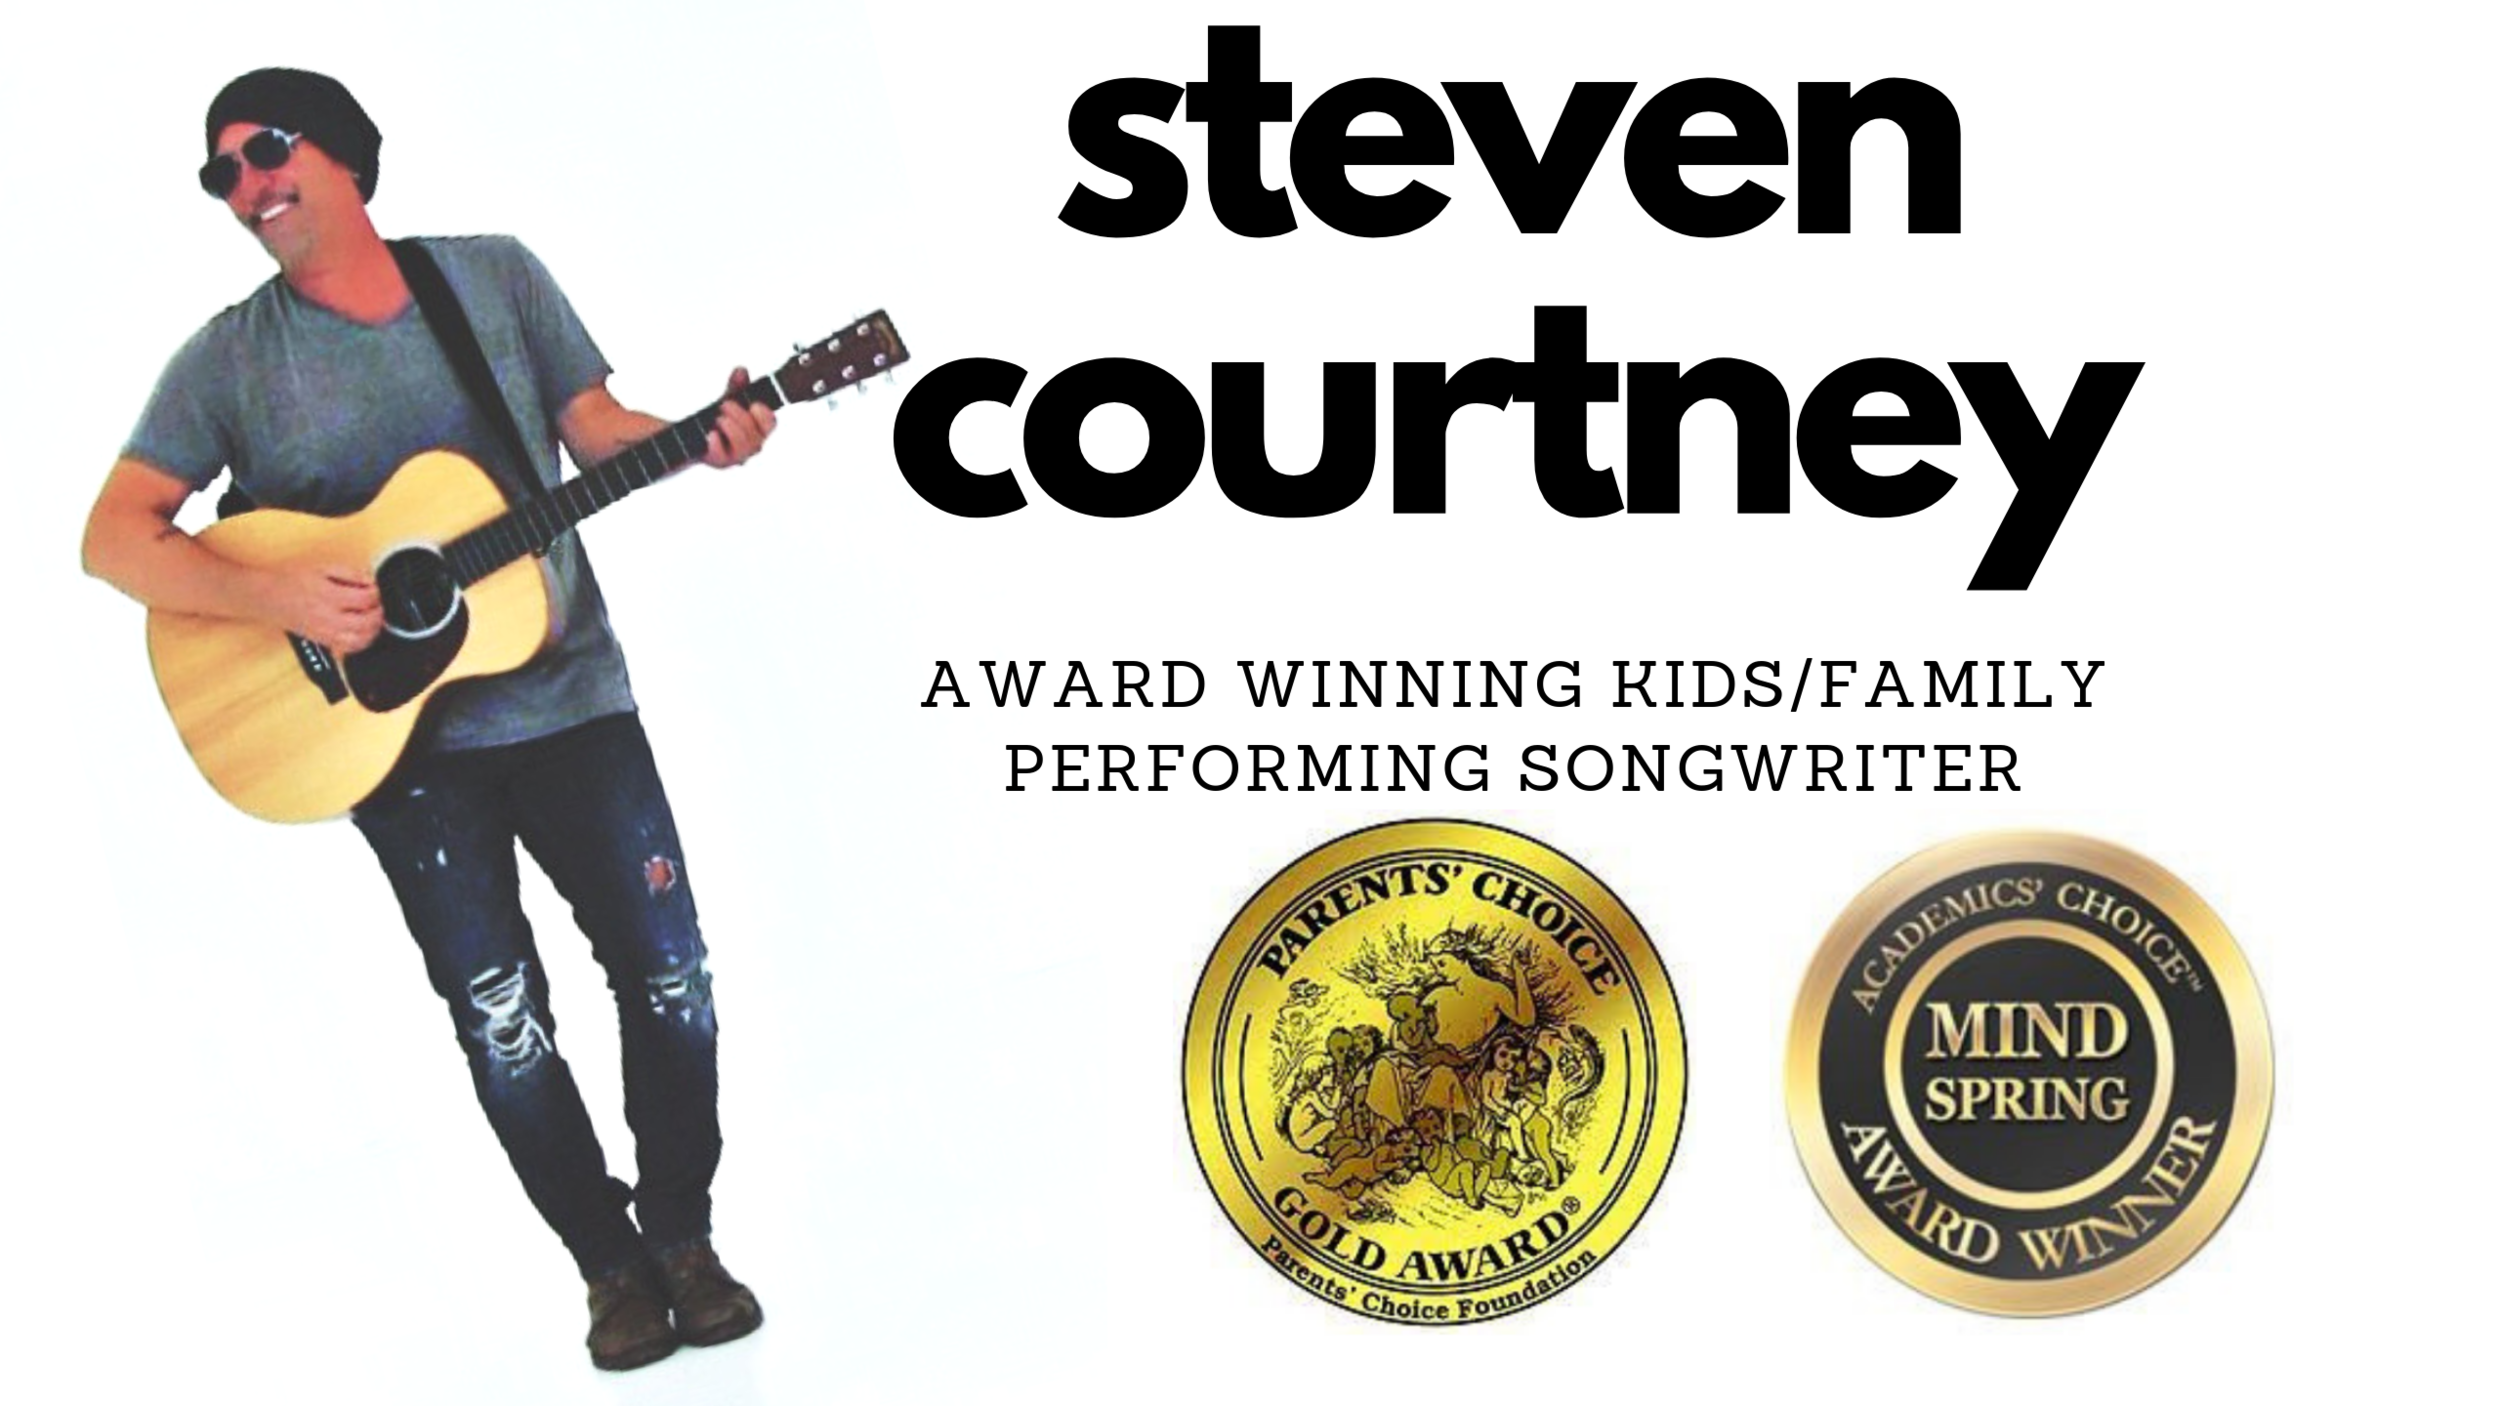 steven courtney NEW WEB.png